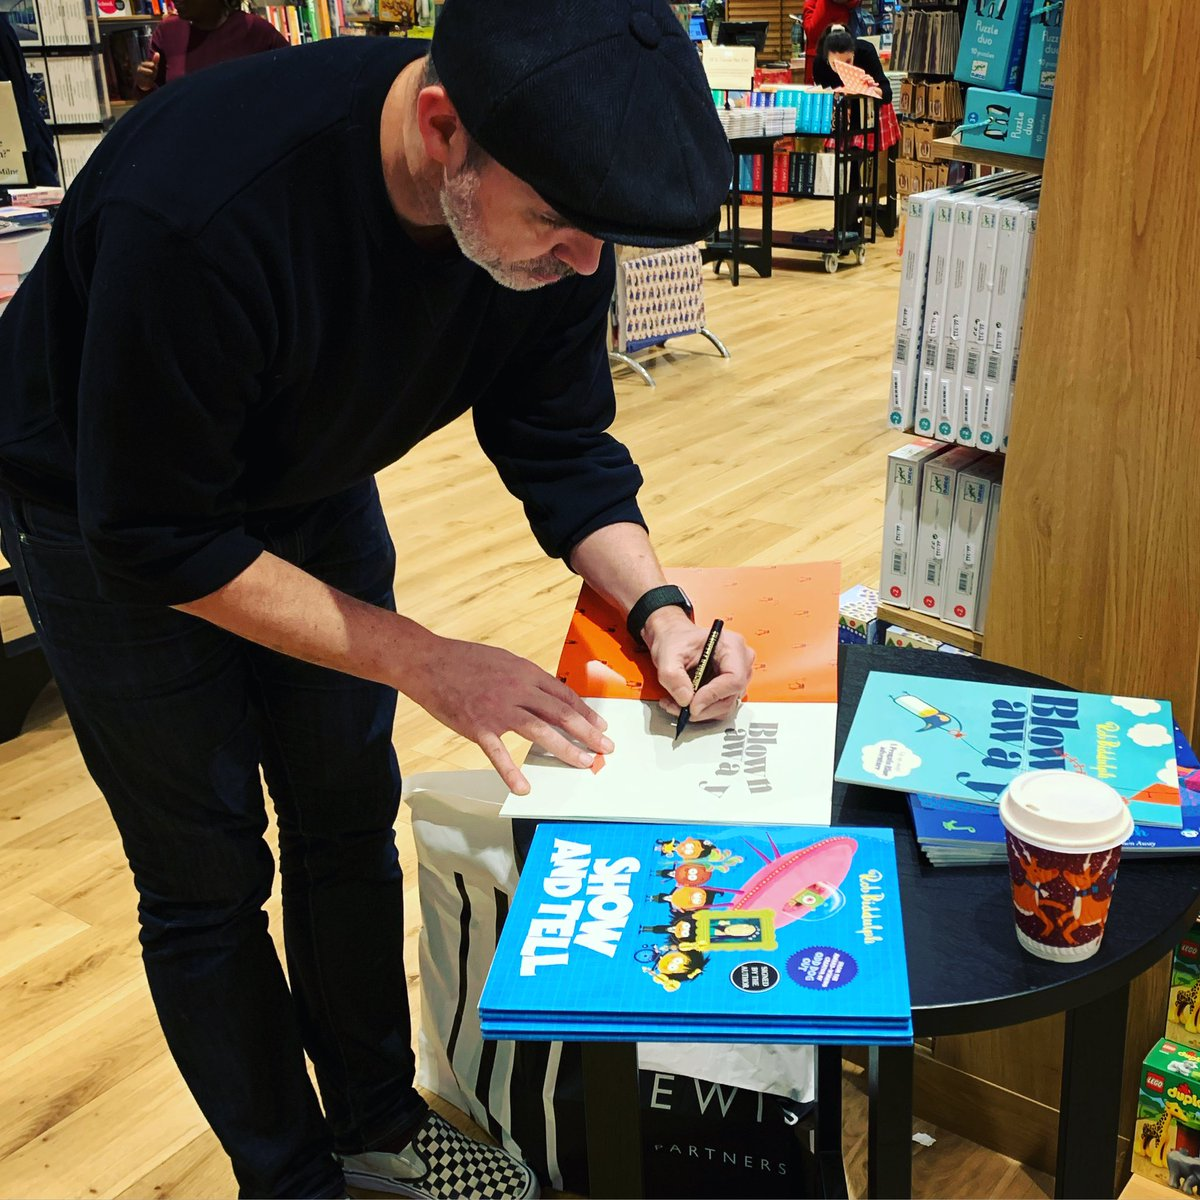 Finally managed to get to the brand new Waterstones at Brent Cross (thanks for looking after us Rihanna) and sign a big ol' pile of my books. Go get 'em! They make really nice Christmas (OH LOOK! I'VE SAID THE WORD) presents.